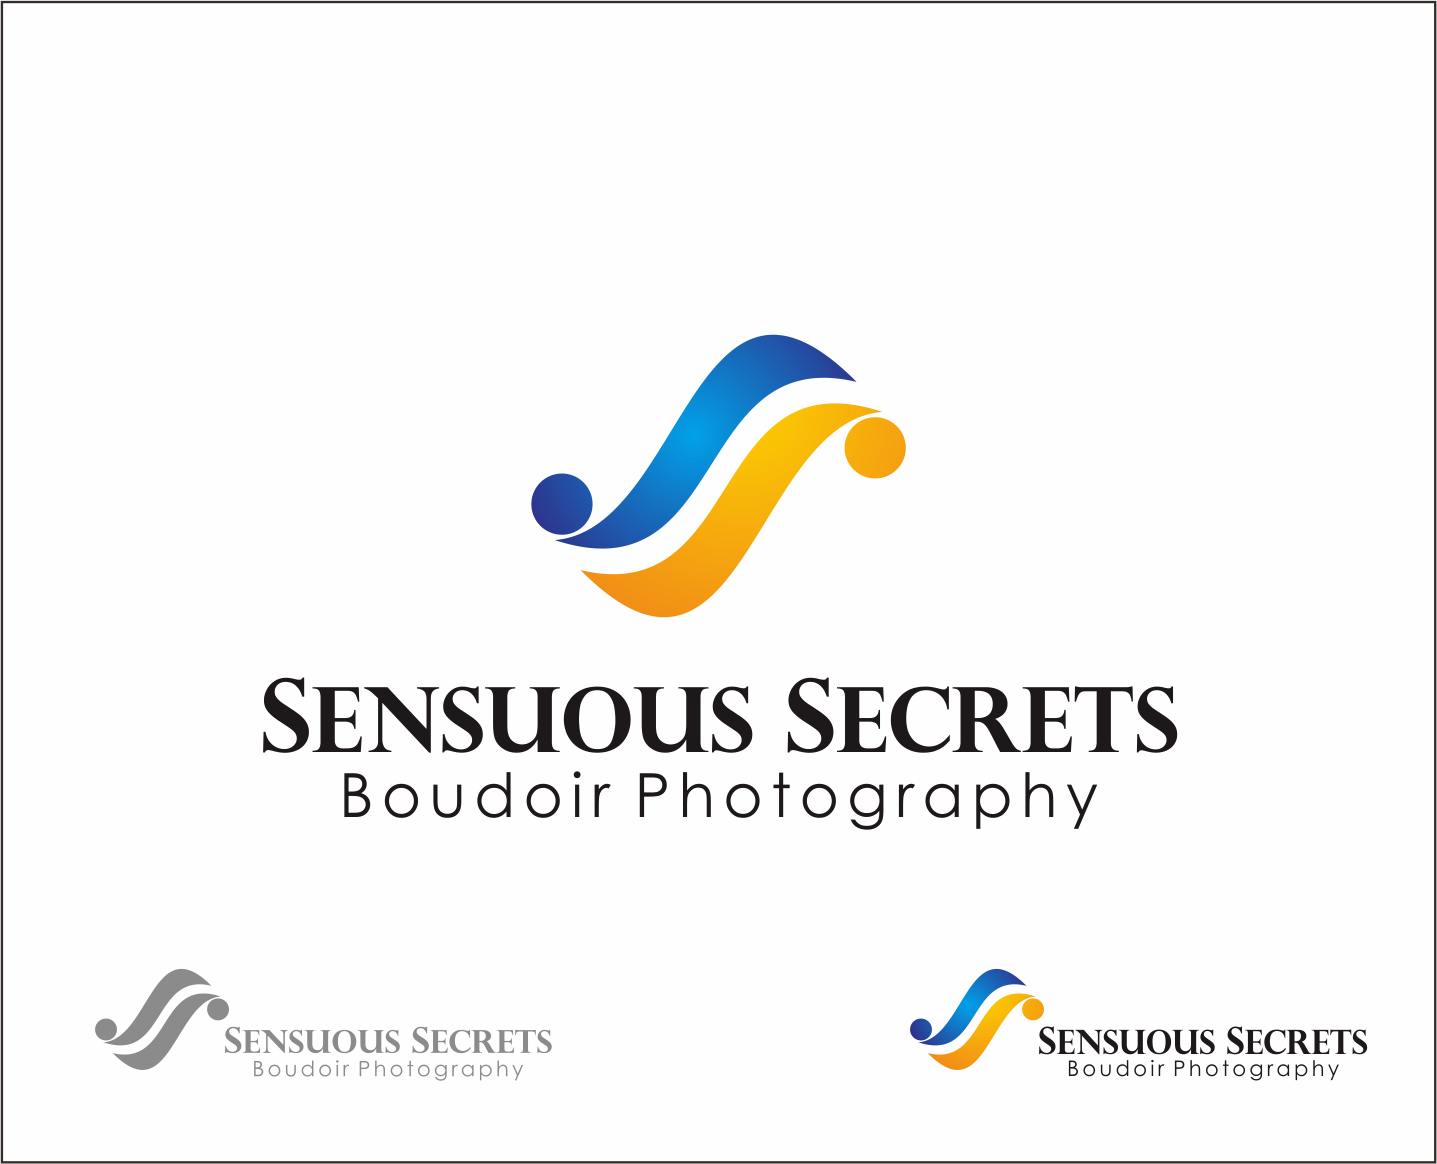 Logo Design by Armada Jamaluddin - Entry No. 108 in the Logo Design Contest Artistic Logo Design for Sensuous Secrets Boudoir Photography.